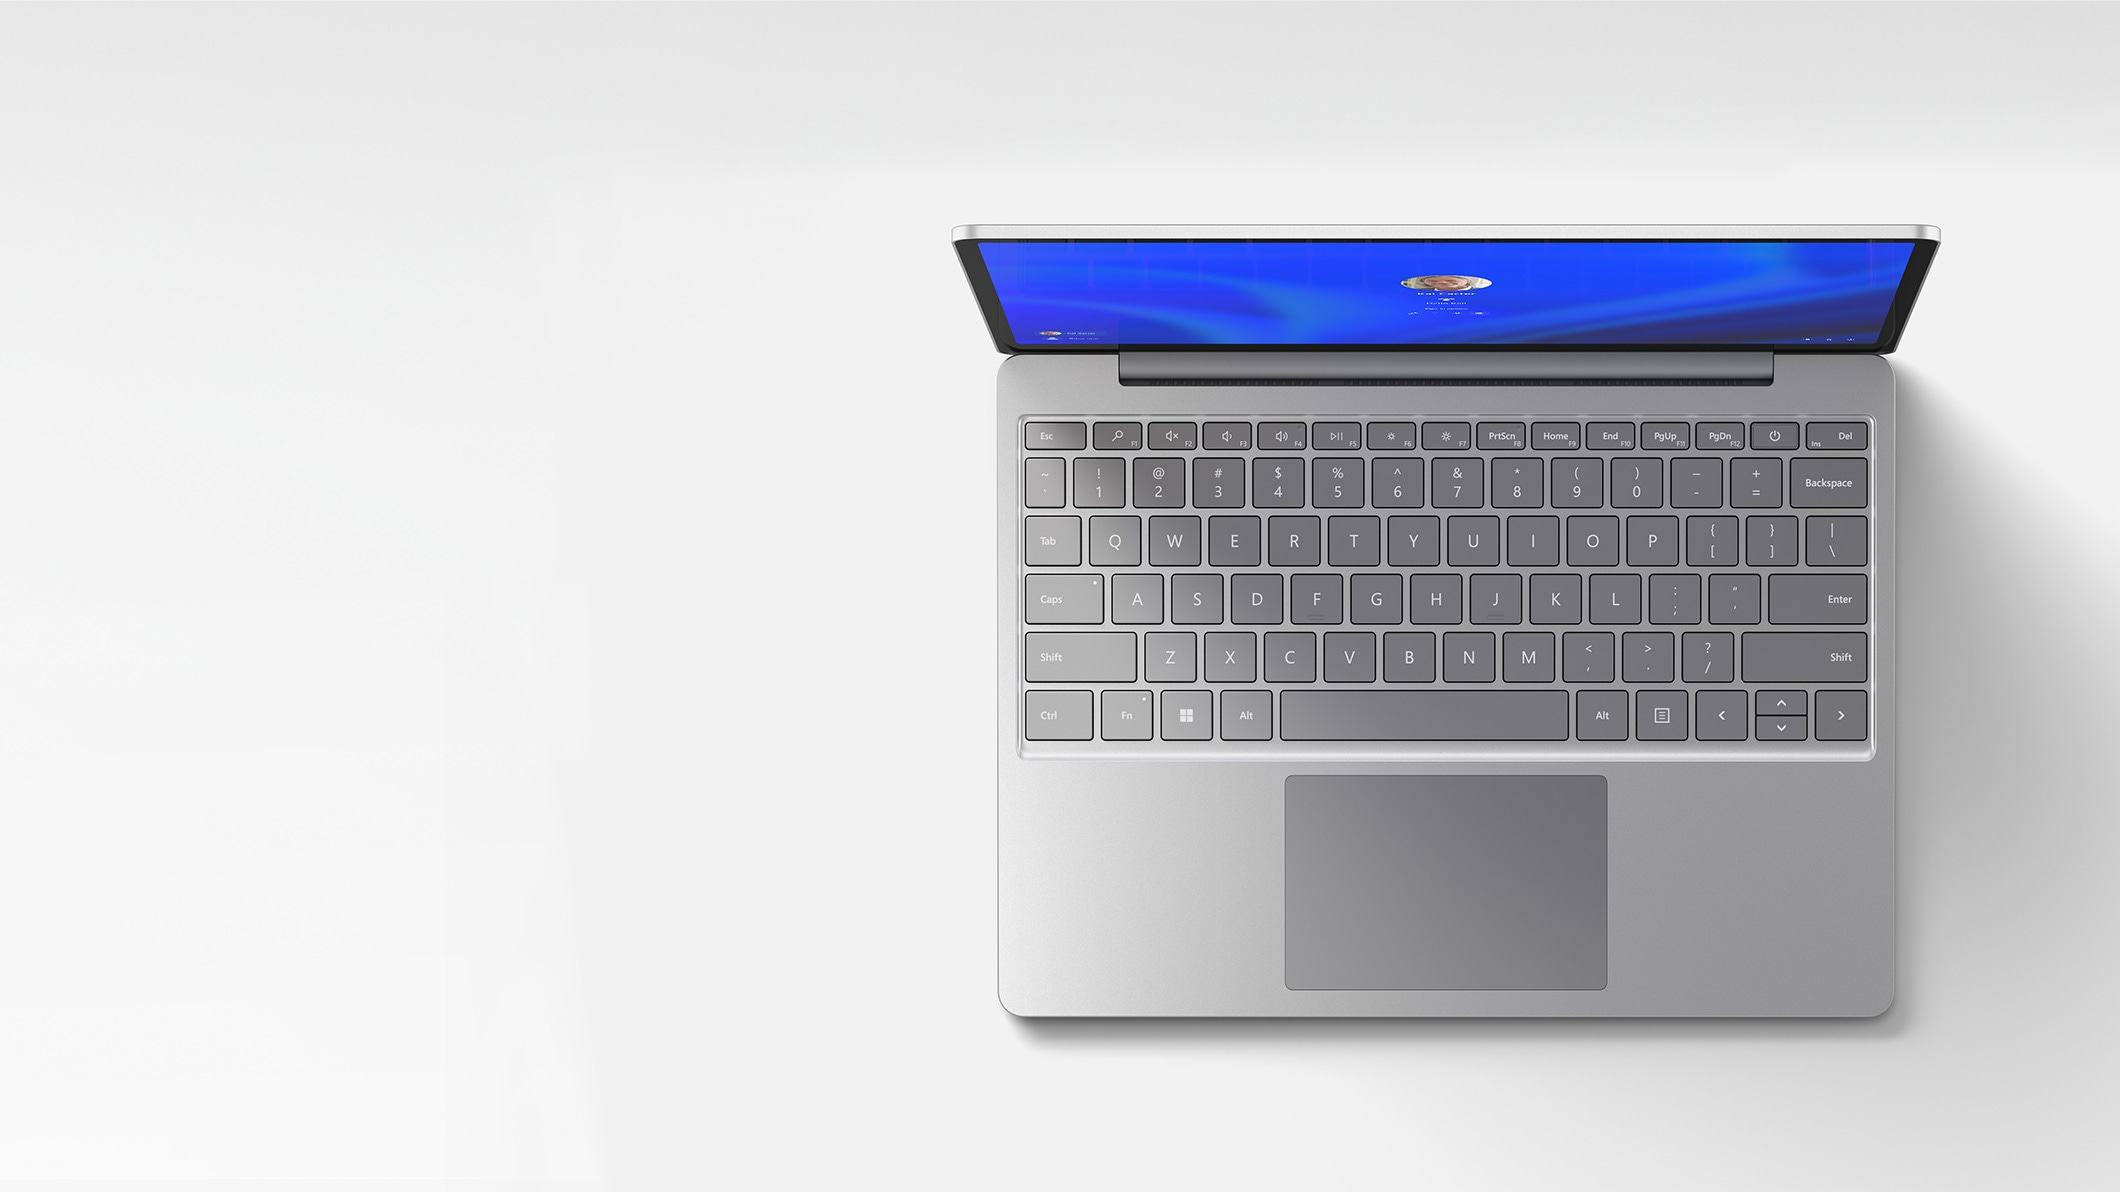 Surface Laptop Go is open viewed from above